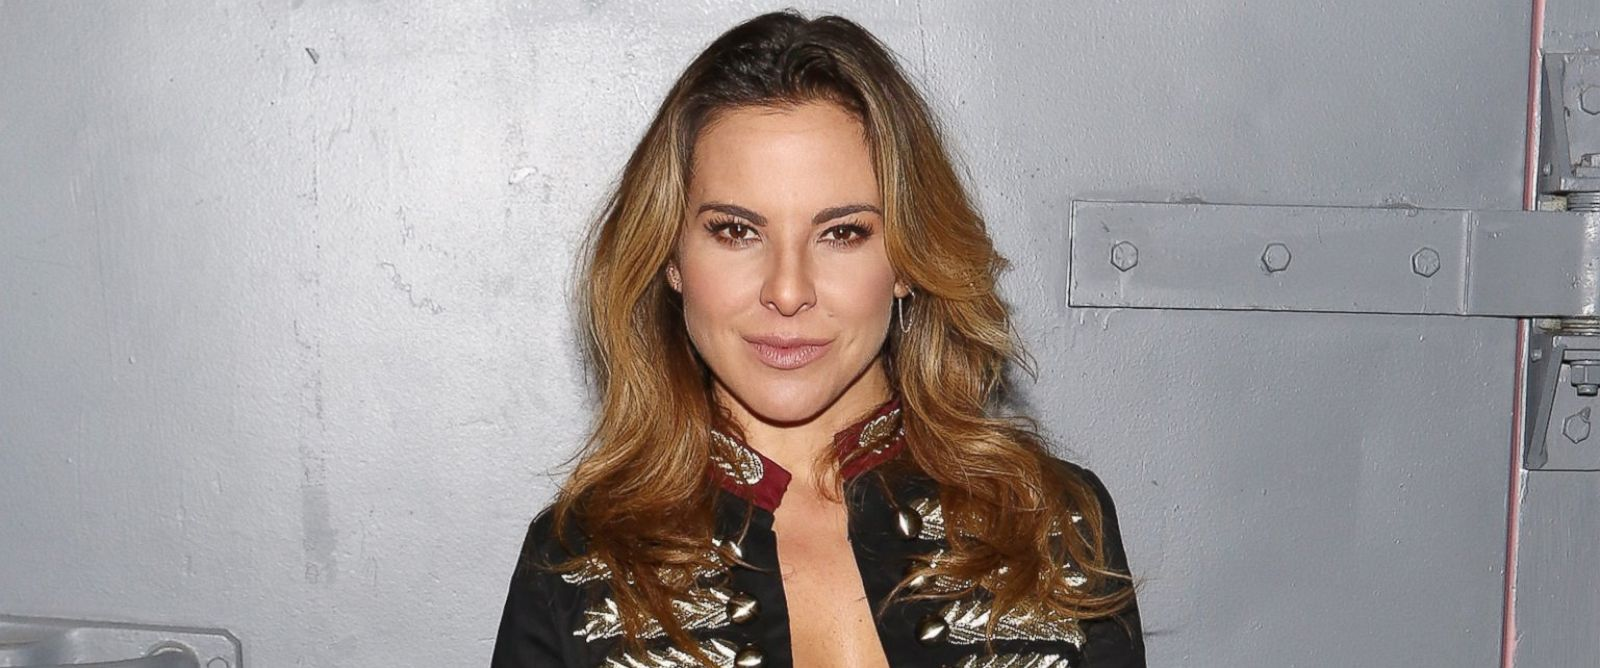 kate del castillo education